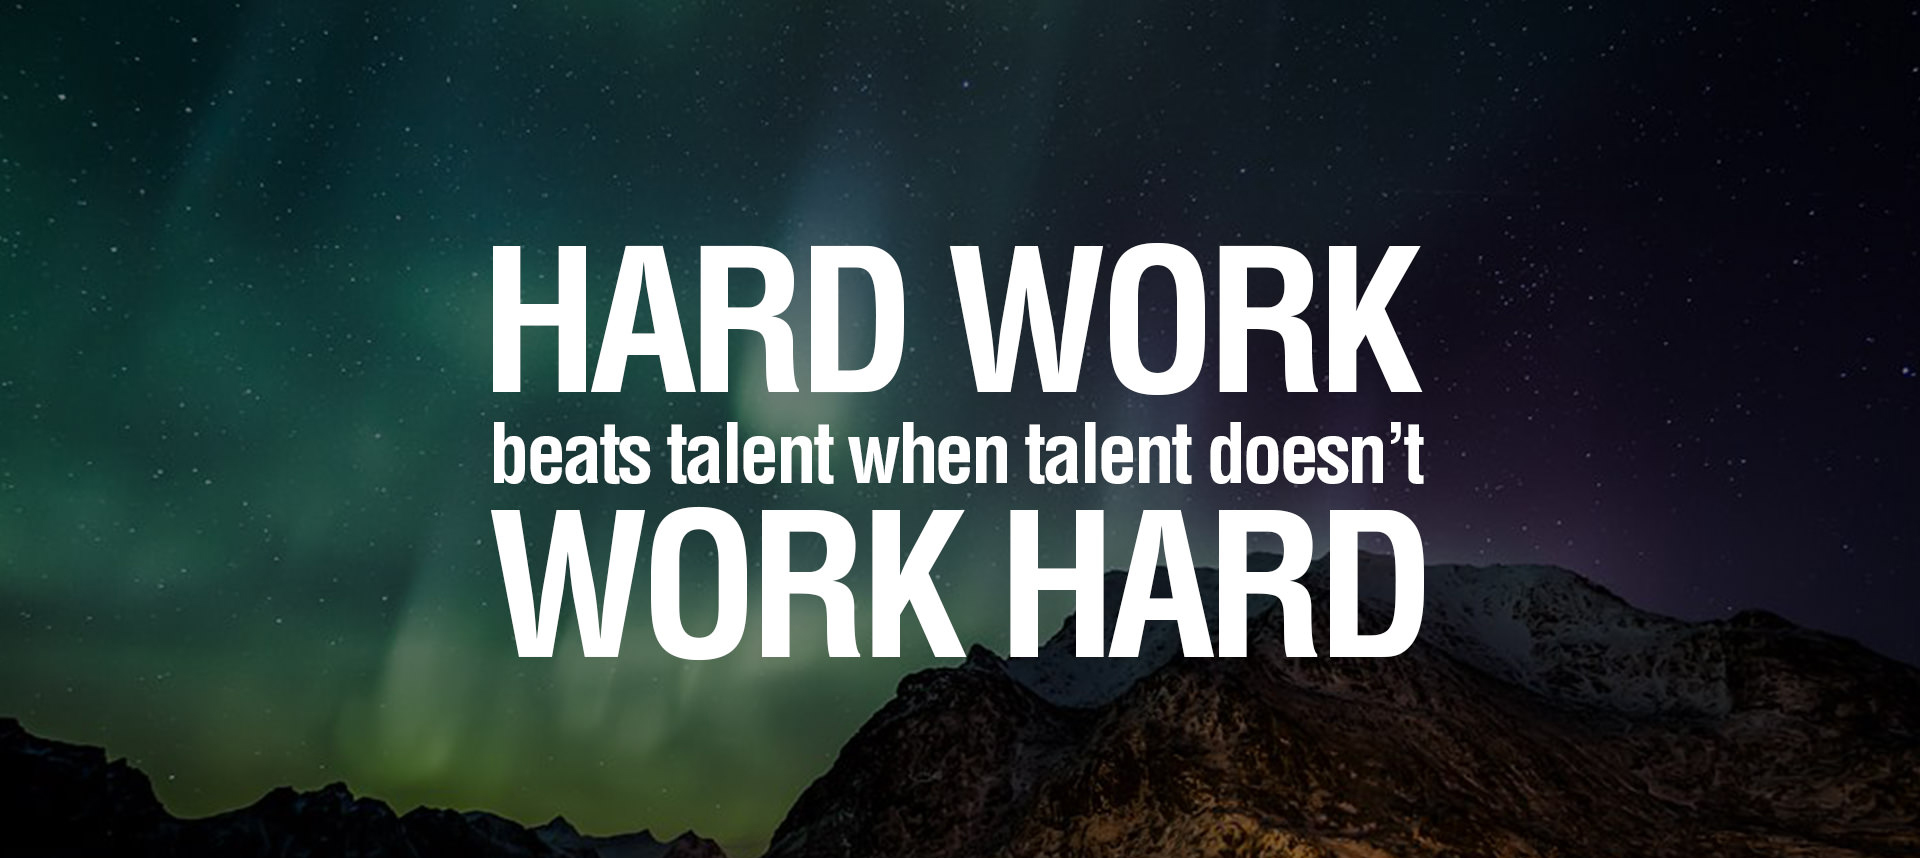 hard work beat talent